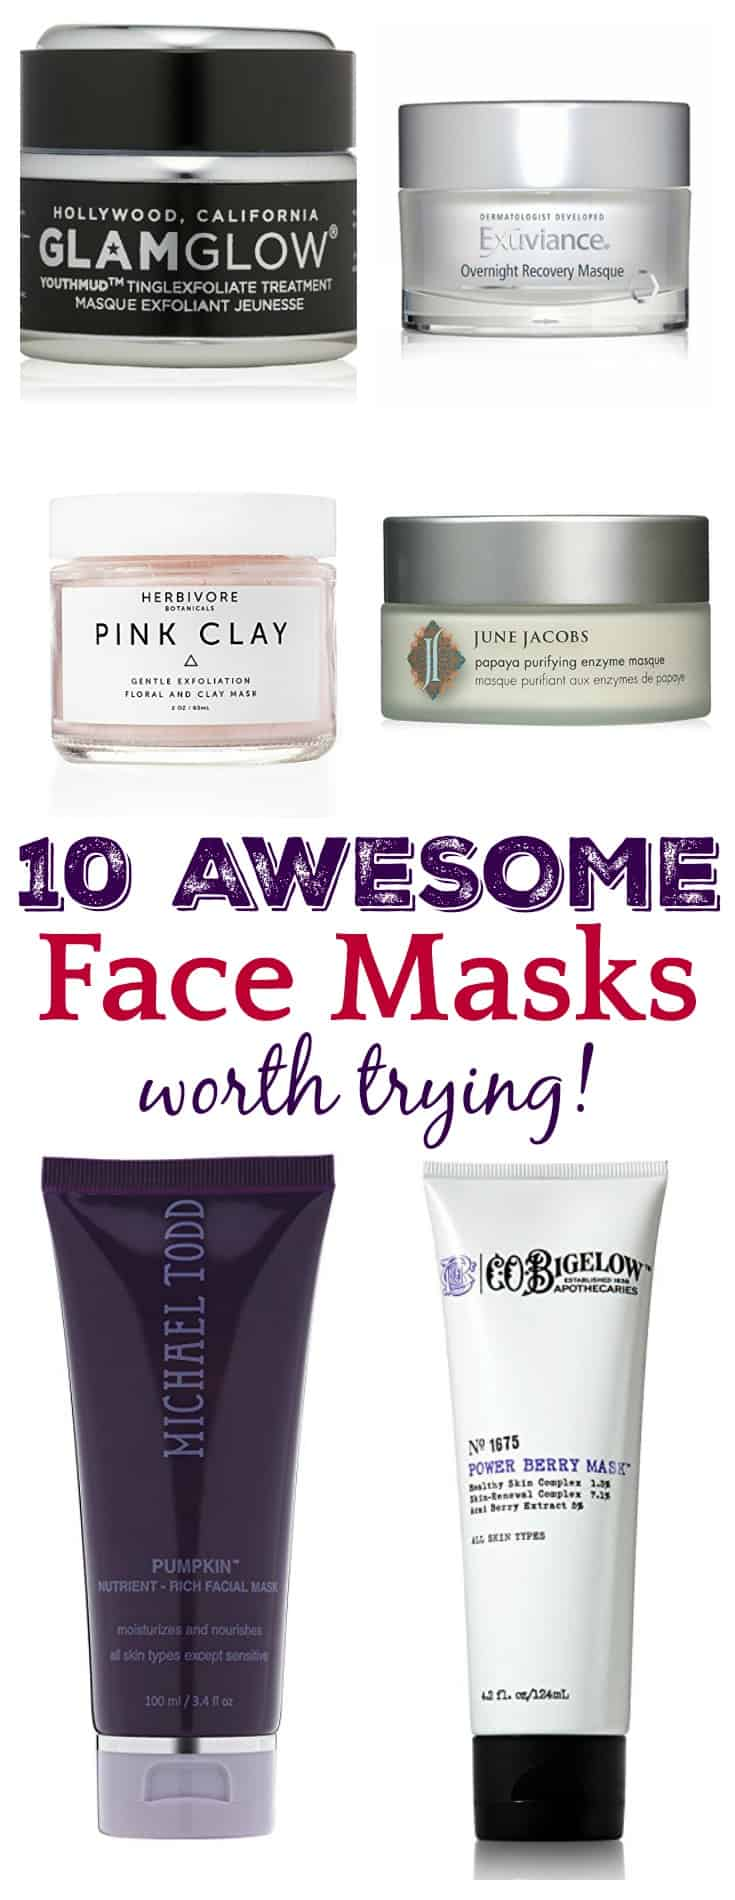 With so many beauty brands and products on the market today, it can be hard to determine which products are actually worth your money. You need to determine what you want out of a mask first, then choose which ones are right for you. These 10 Awesome Face Masks are tried and true and a good place to start!